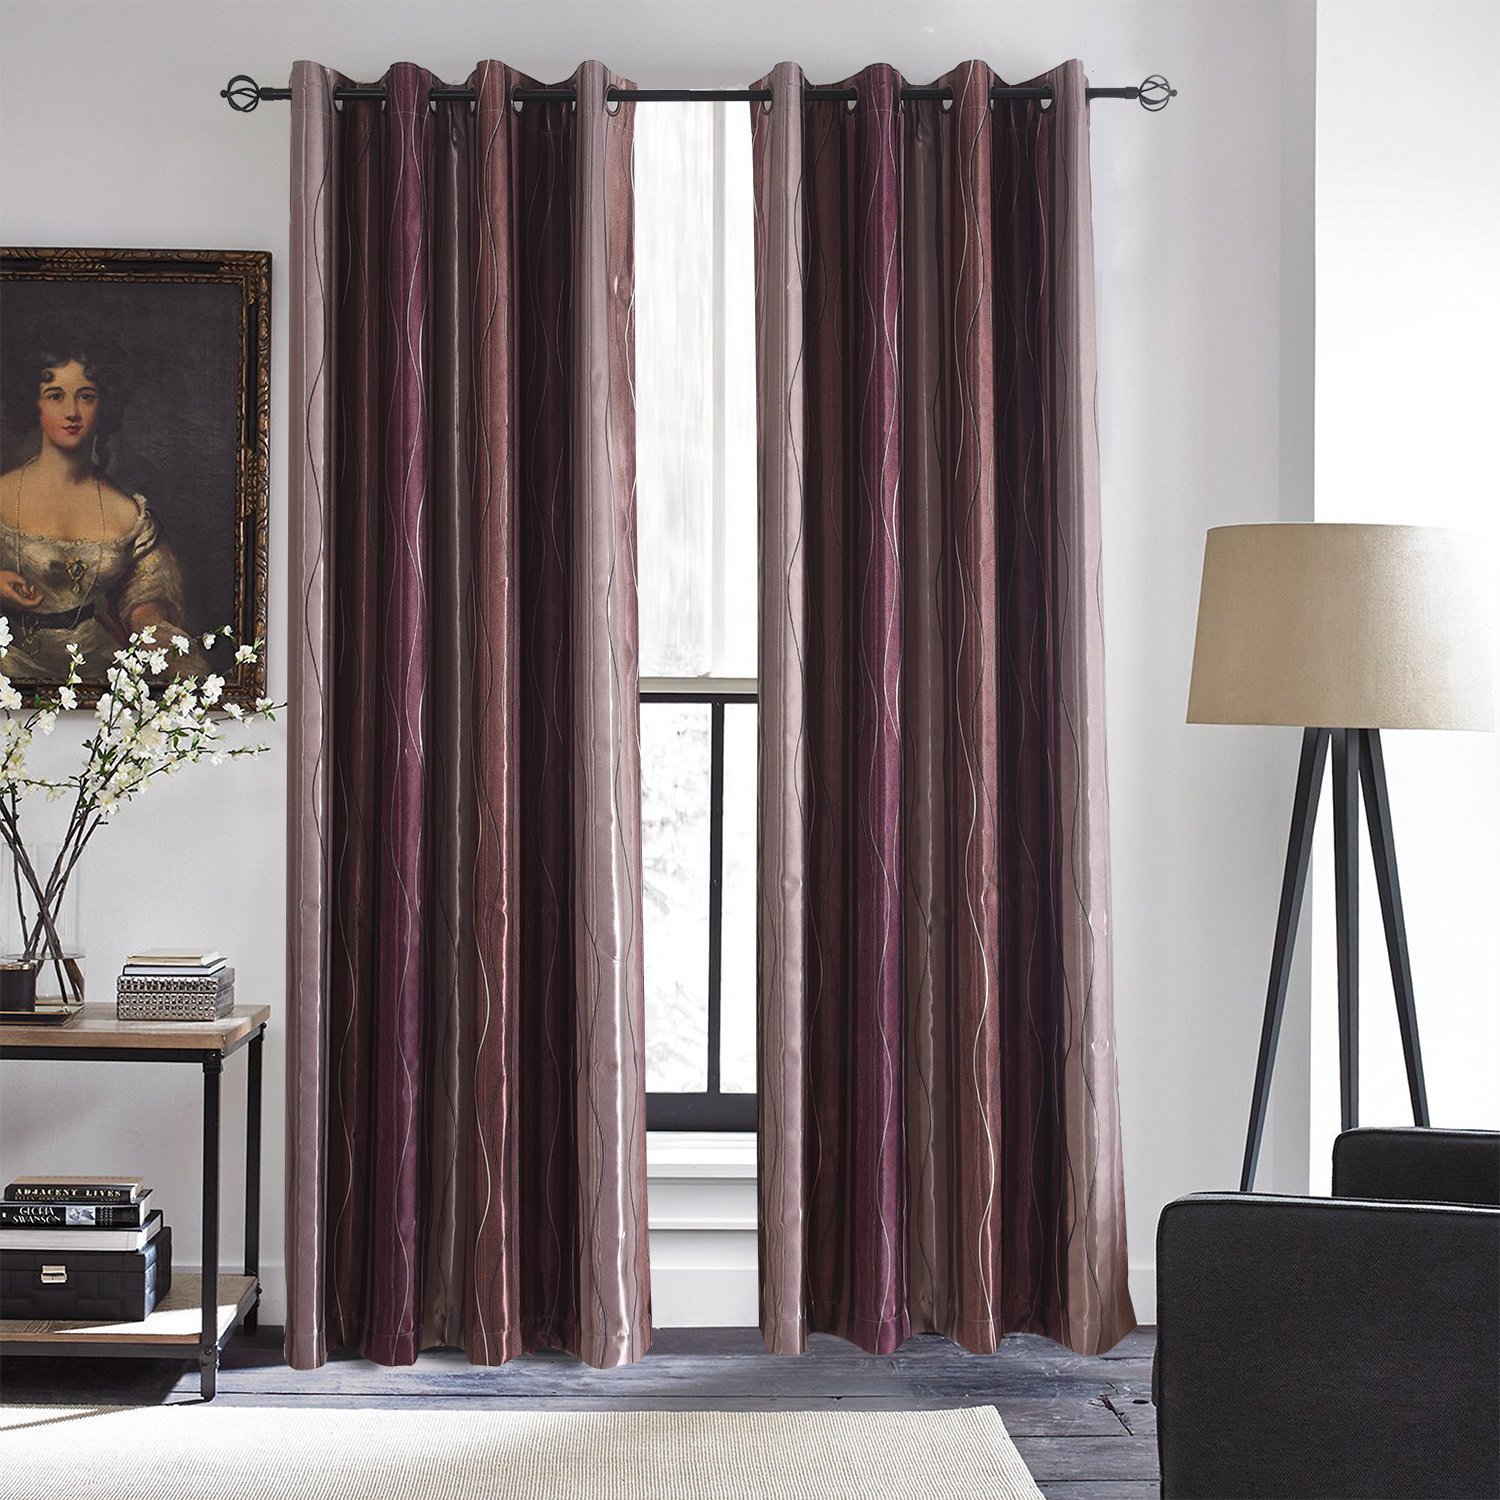 Double Wide Curtain Panels Cheap Double Wide Drapes Find Double Wide Drapes Deals On Line At